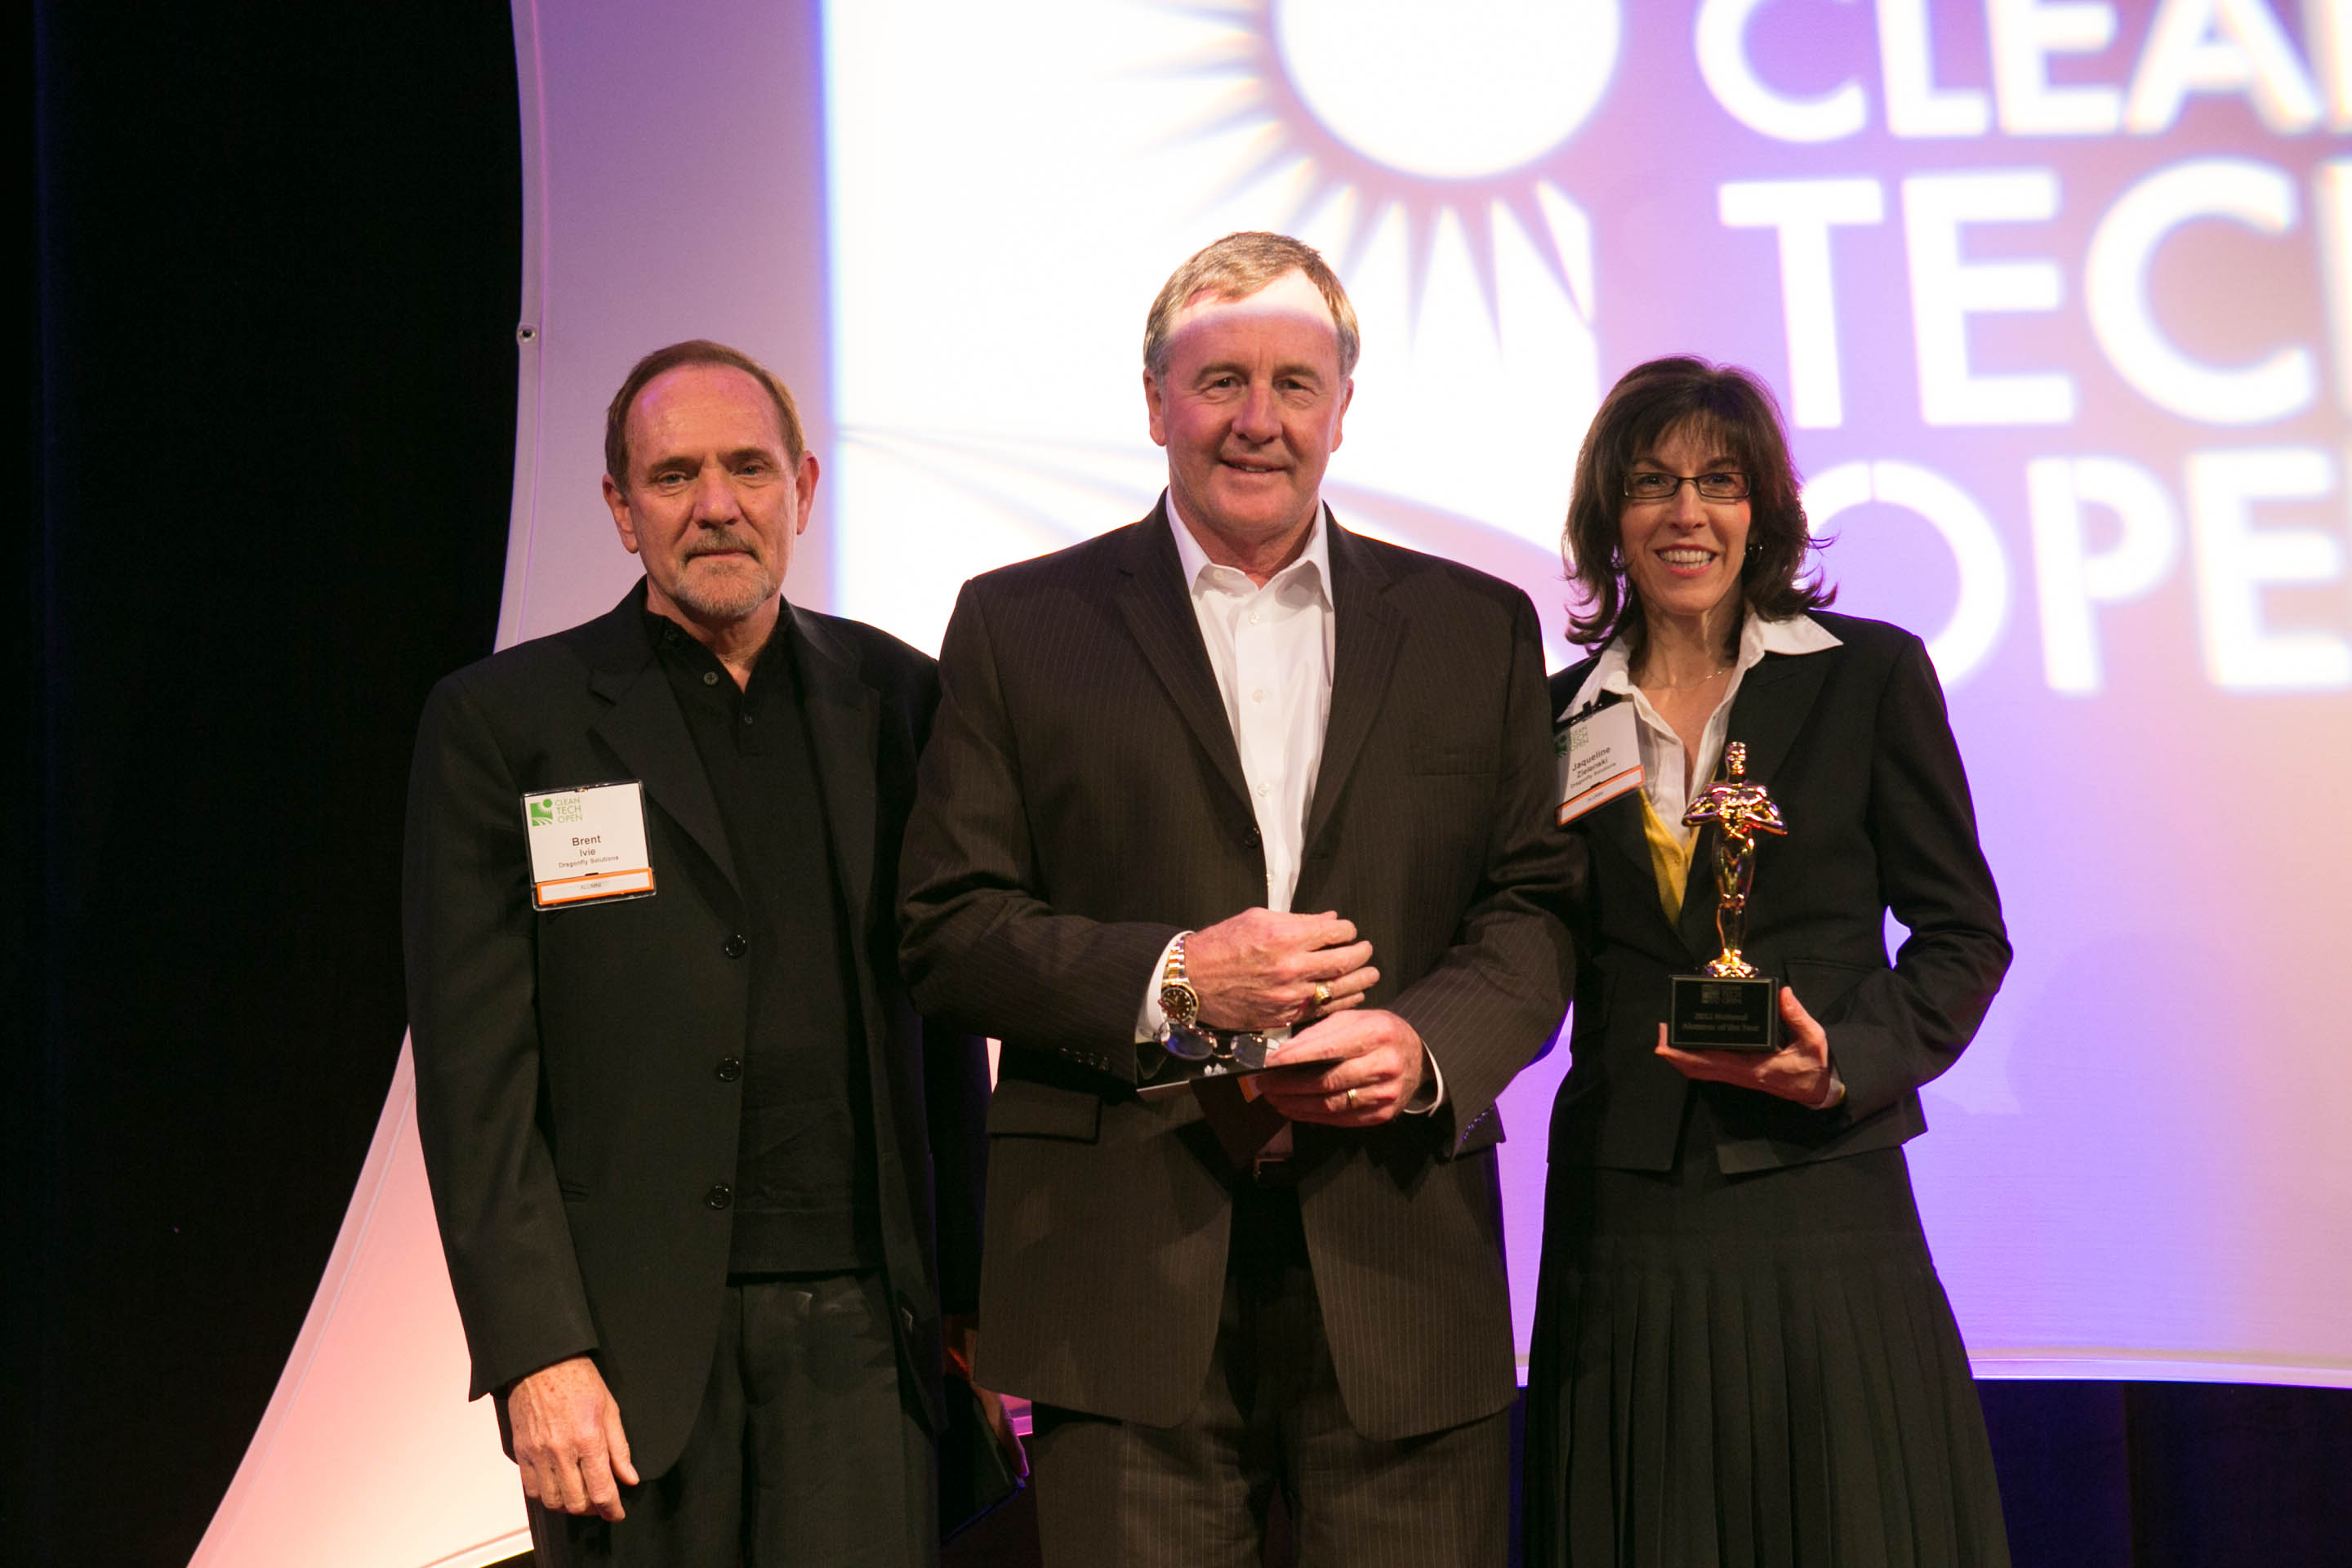 The 2012 Alumni Award was awarded to Dragonfly Solutions from the 2011 Rocky Mountain competition